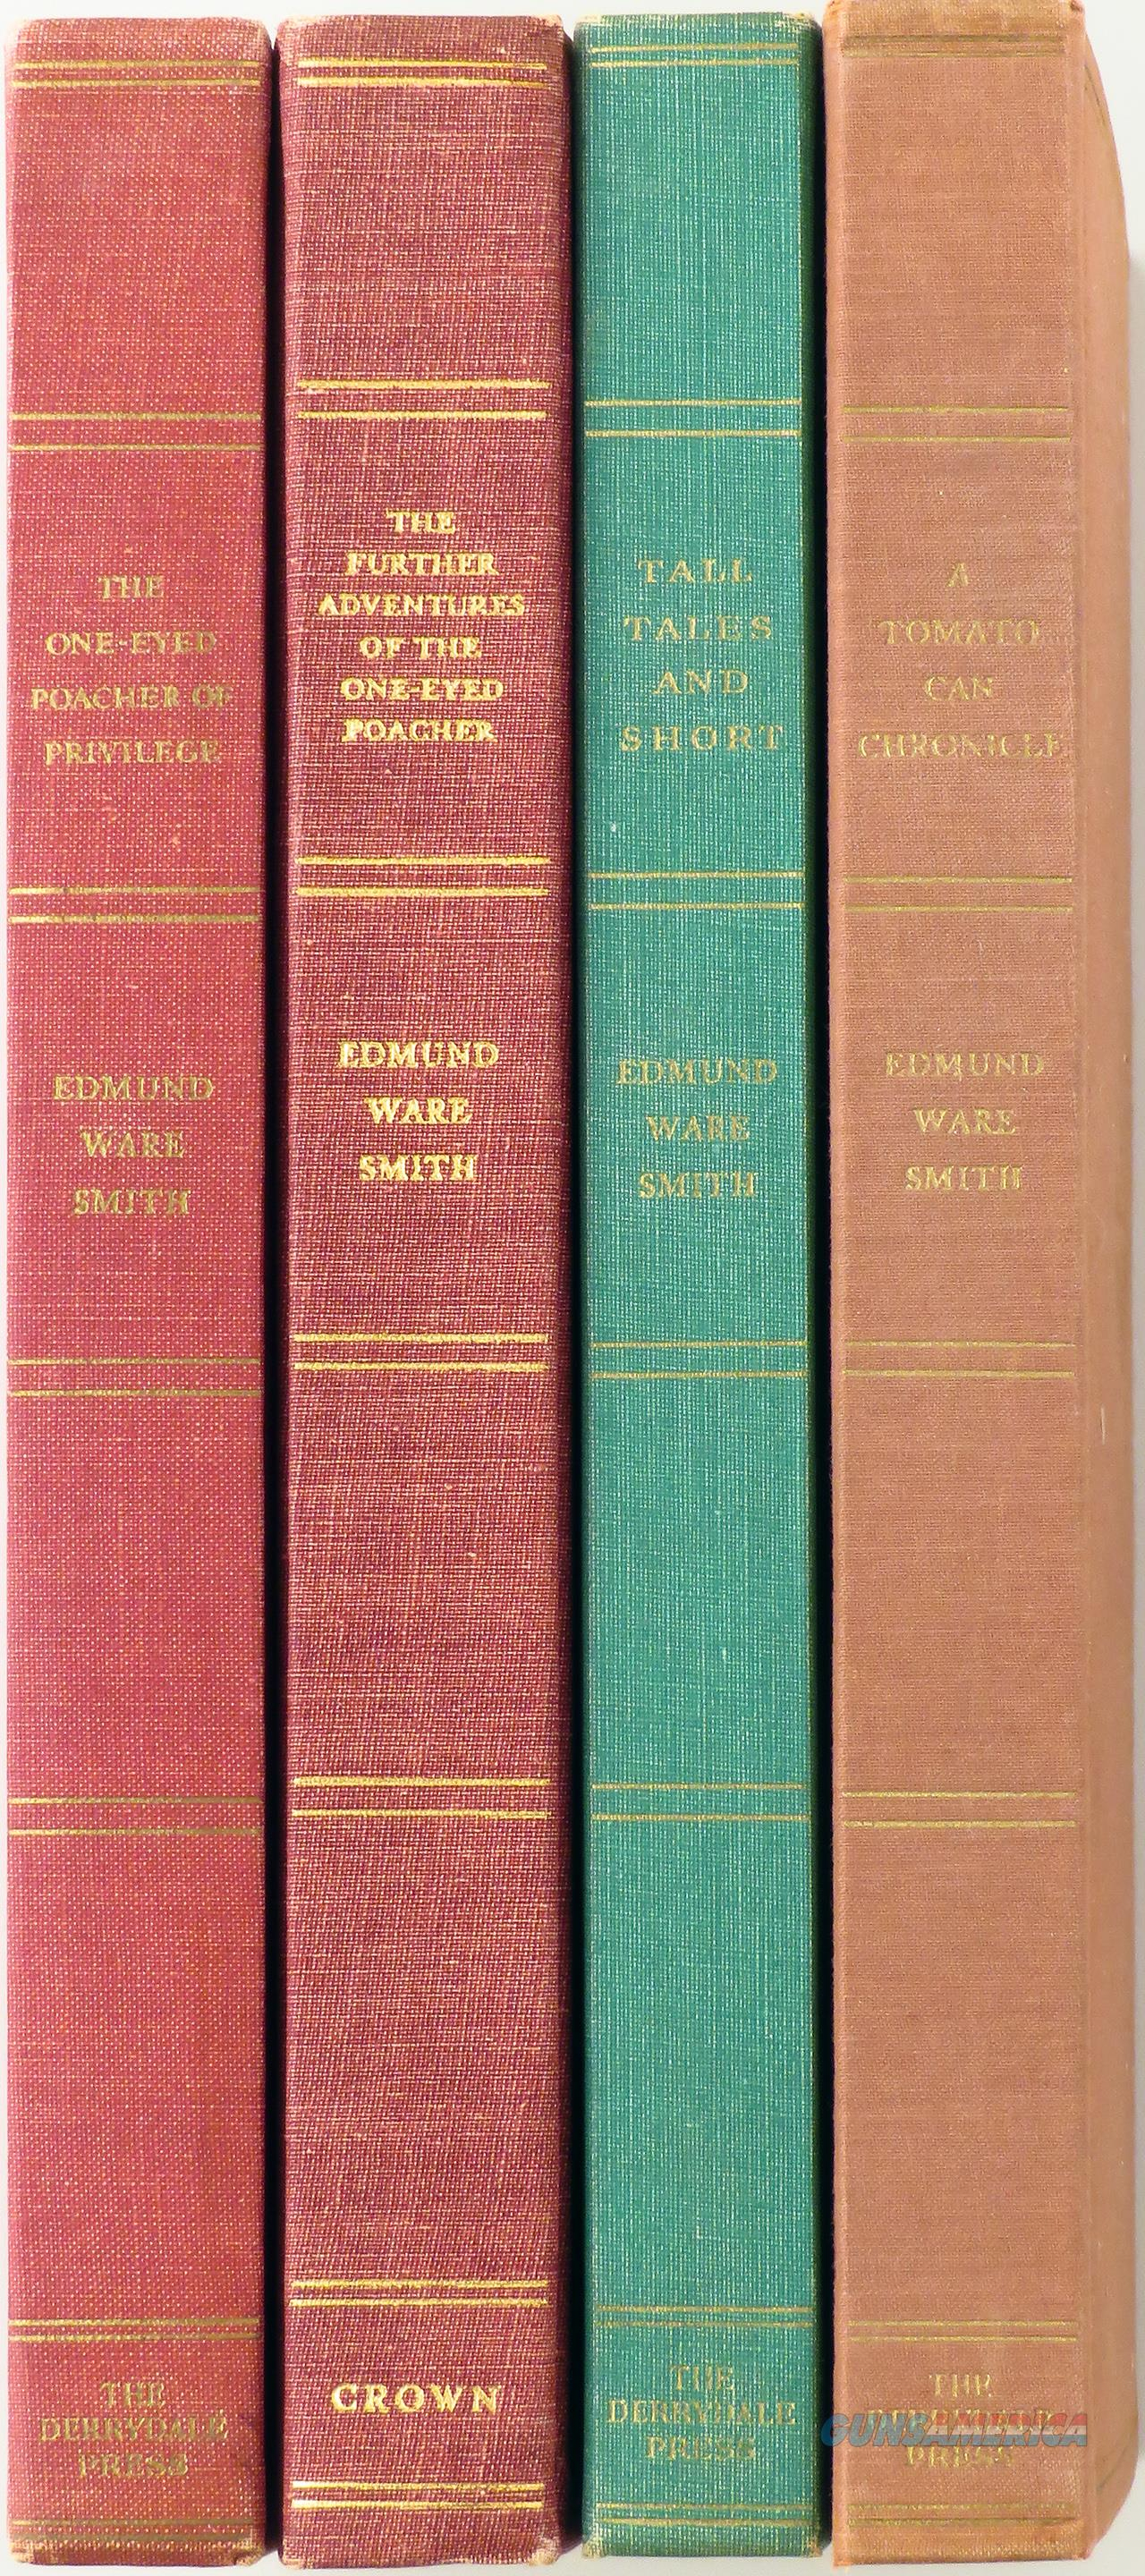 Derrydale Press, four books by Edmund Ware Smith, one signed. limited editions  Non-Guns > Books & Magazines